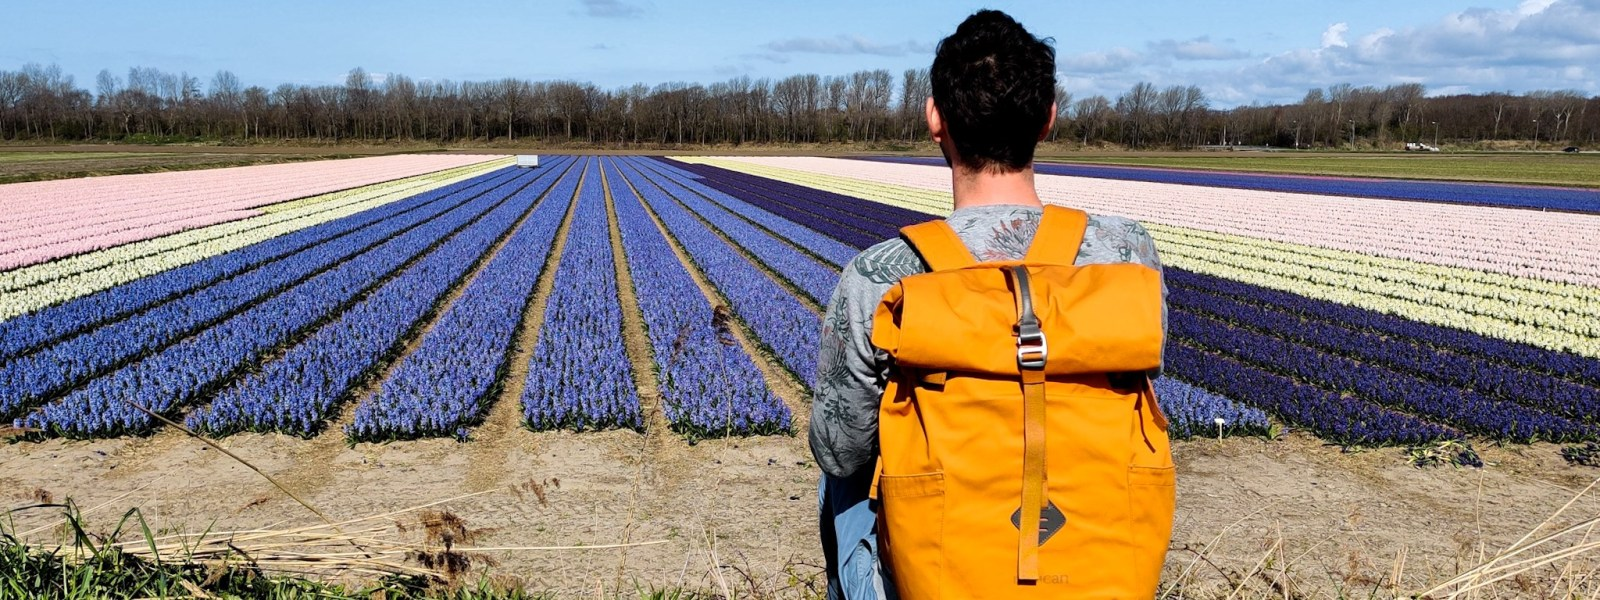 Amsterdam tulip route: the tulip fields in the Netherlands by car